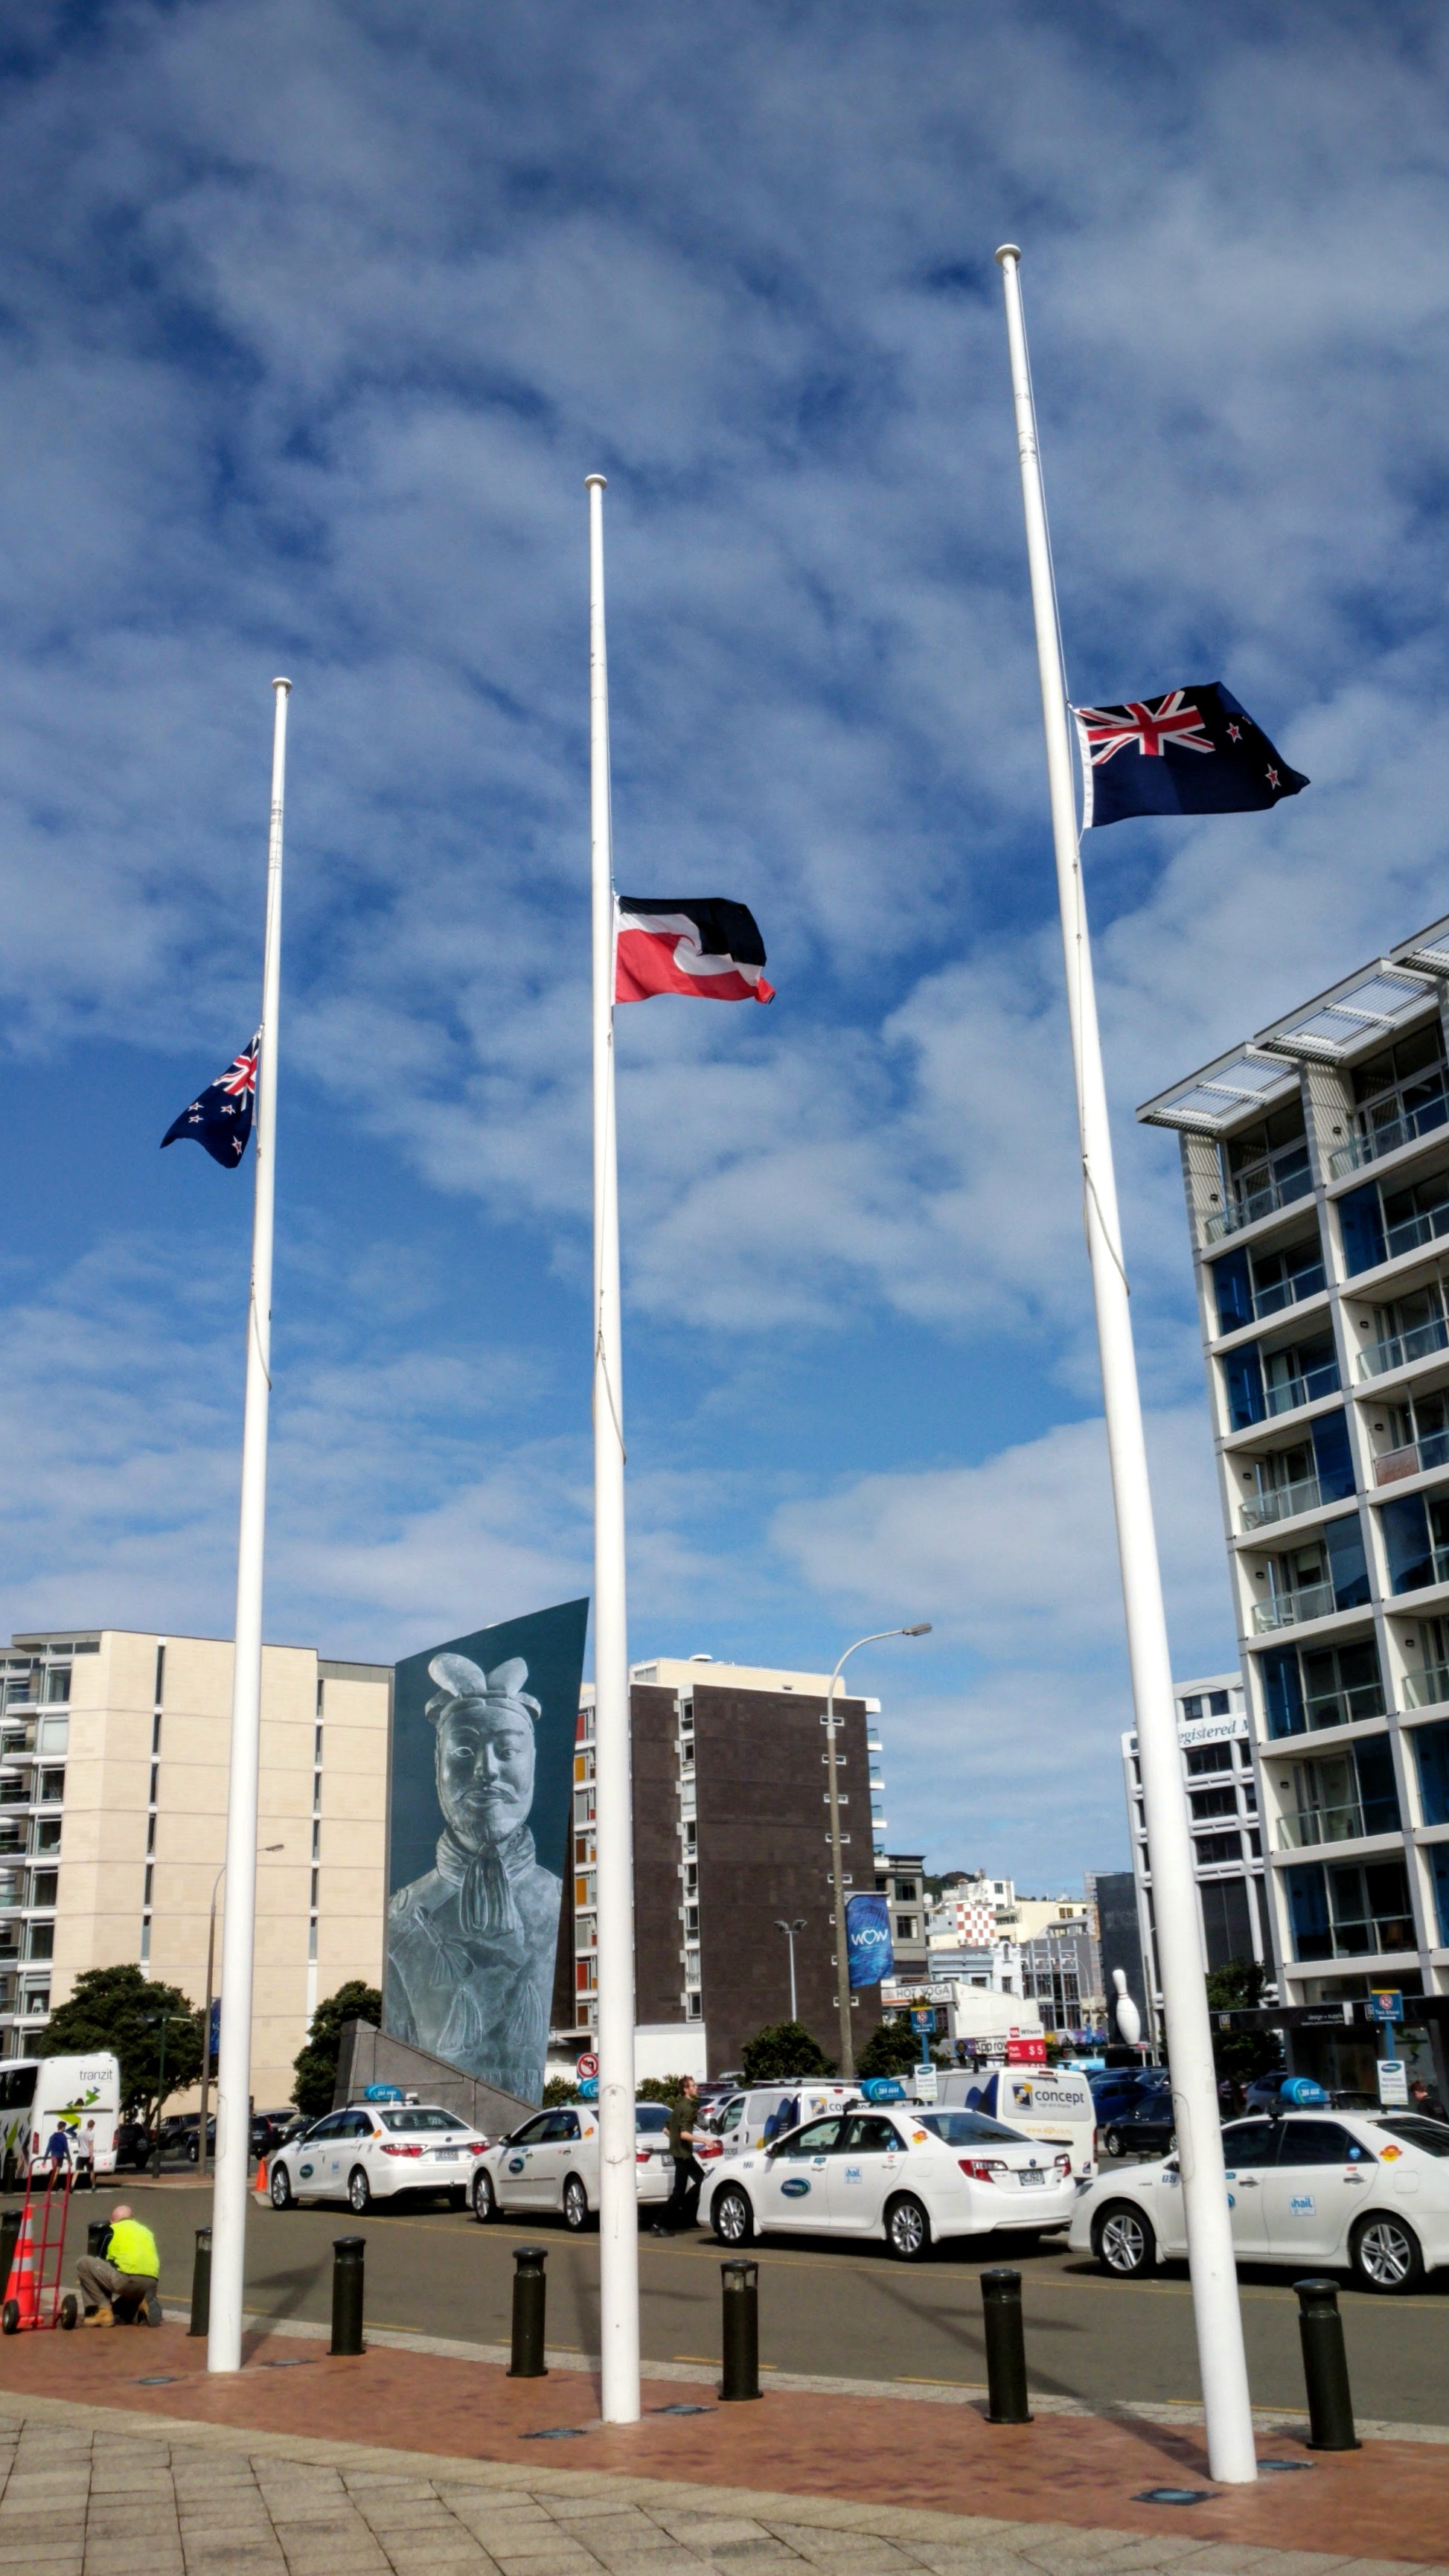 Flags flown at half mast to mark the funeral of former Vietnamese President Tran Dai Quang